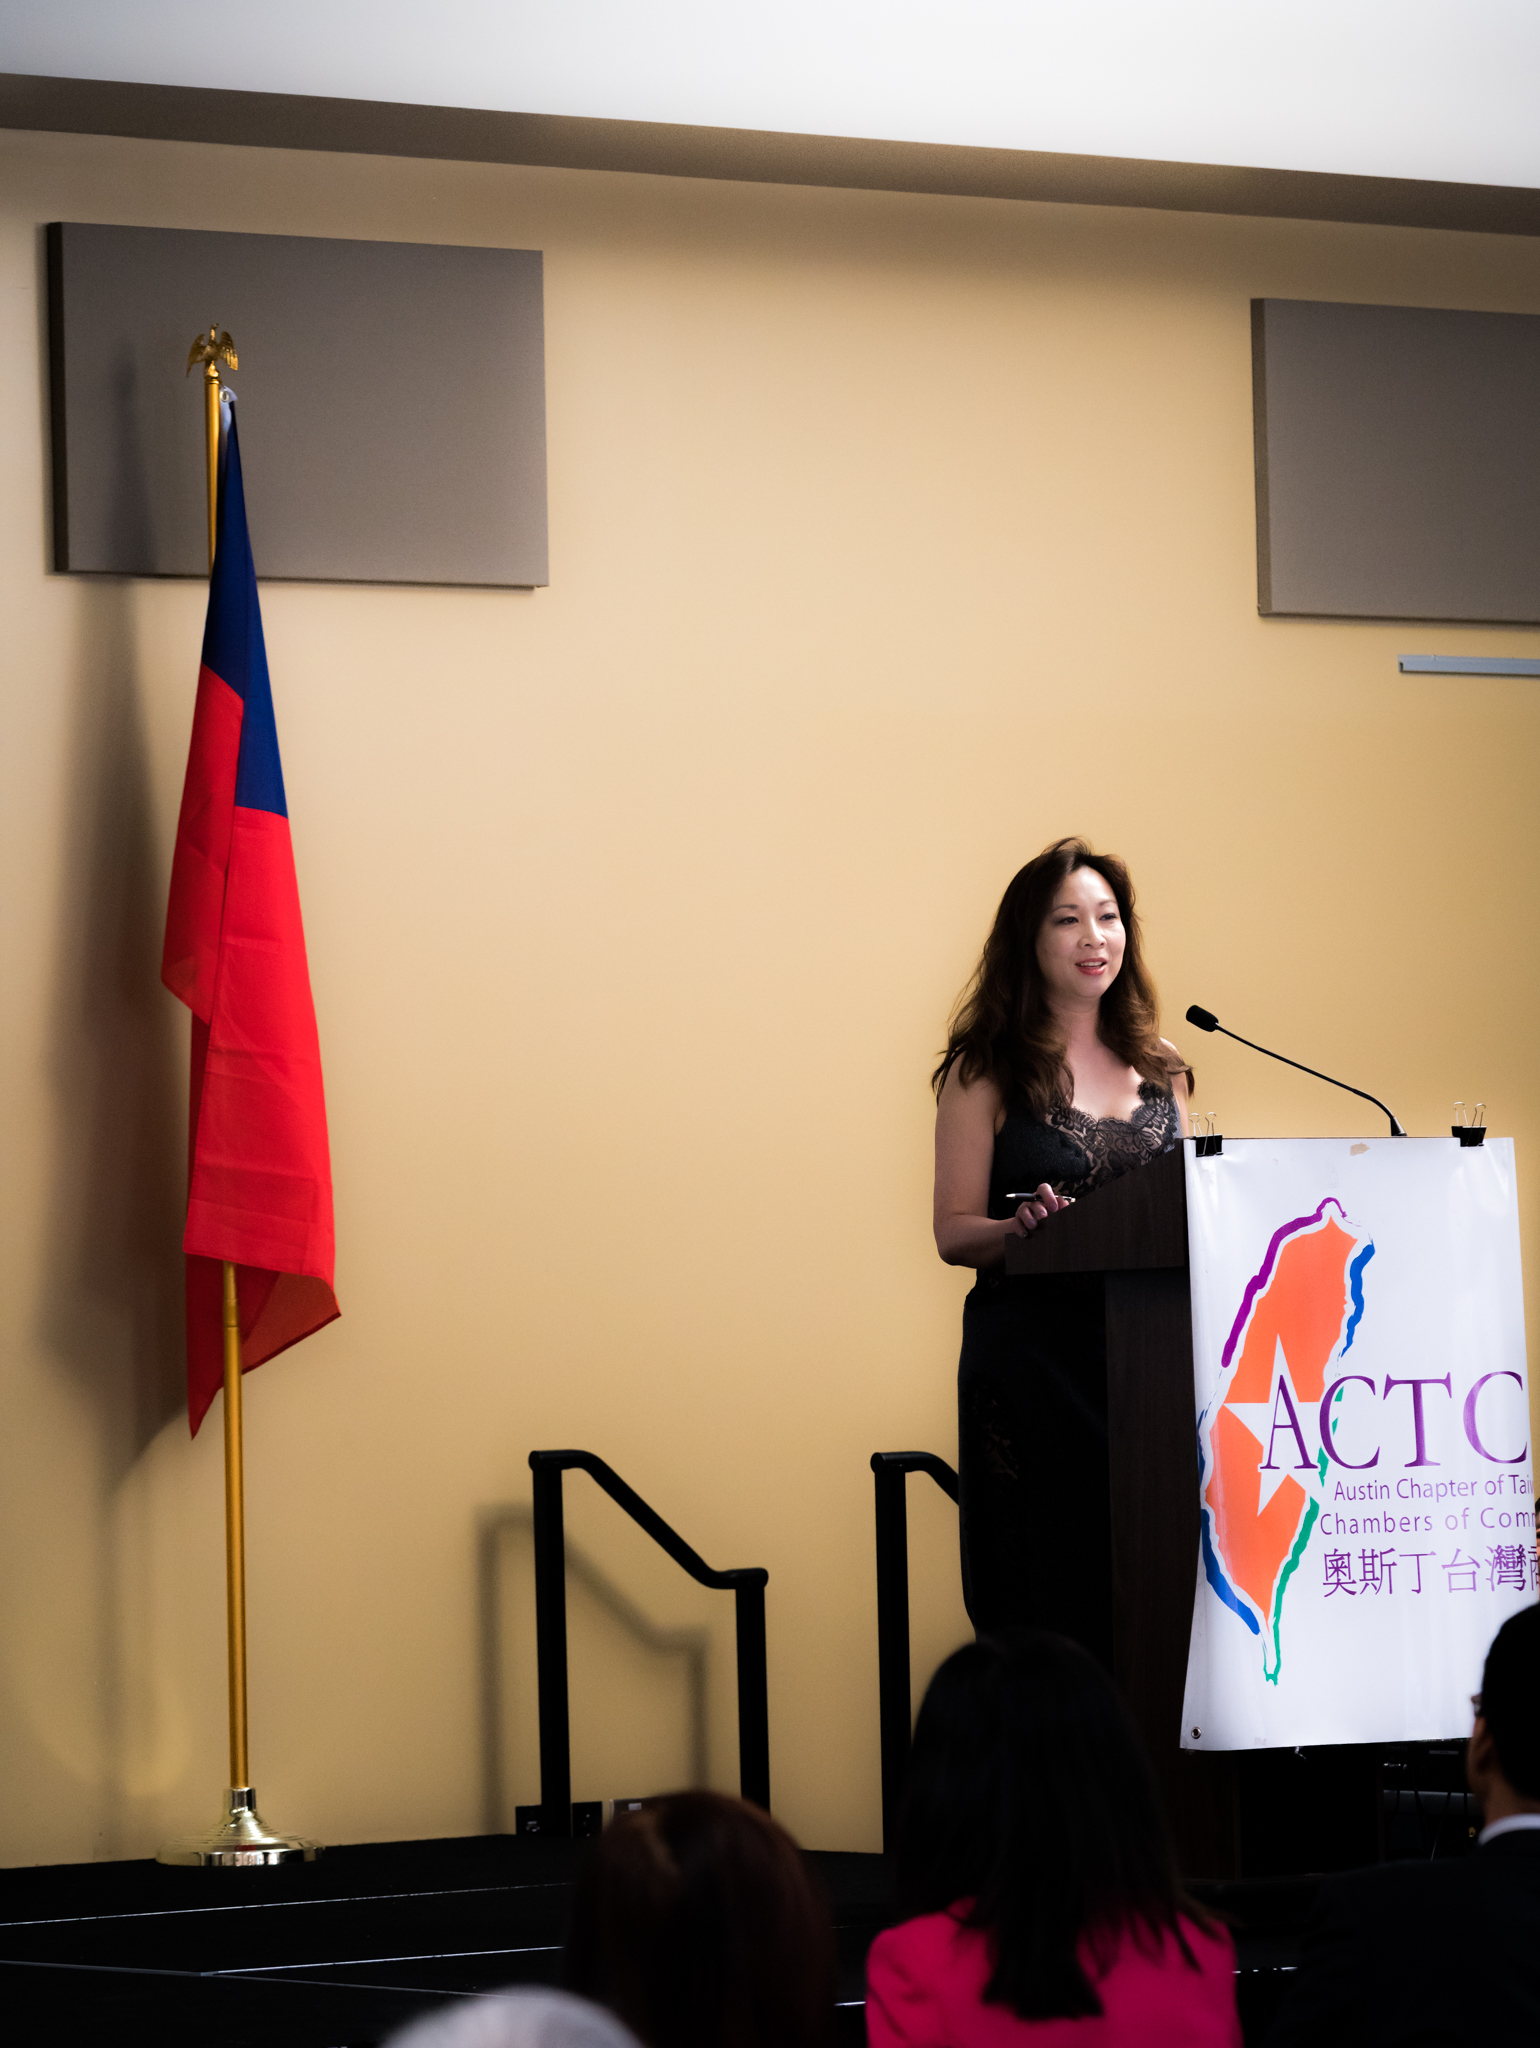 https://0201.nccdn.net/1_2/000/000/17e/1a5/29OCT2016---ACTCC-TW-National-Day-Celebration-at-AARC-2.JPG